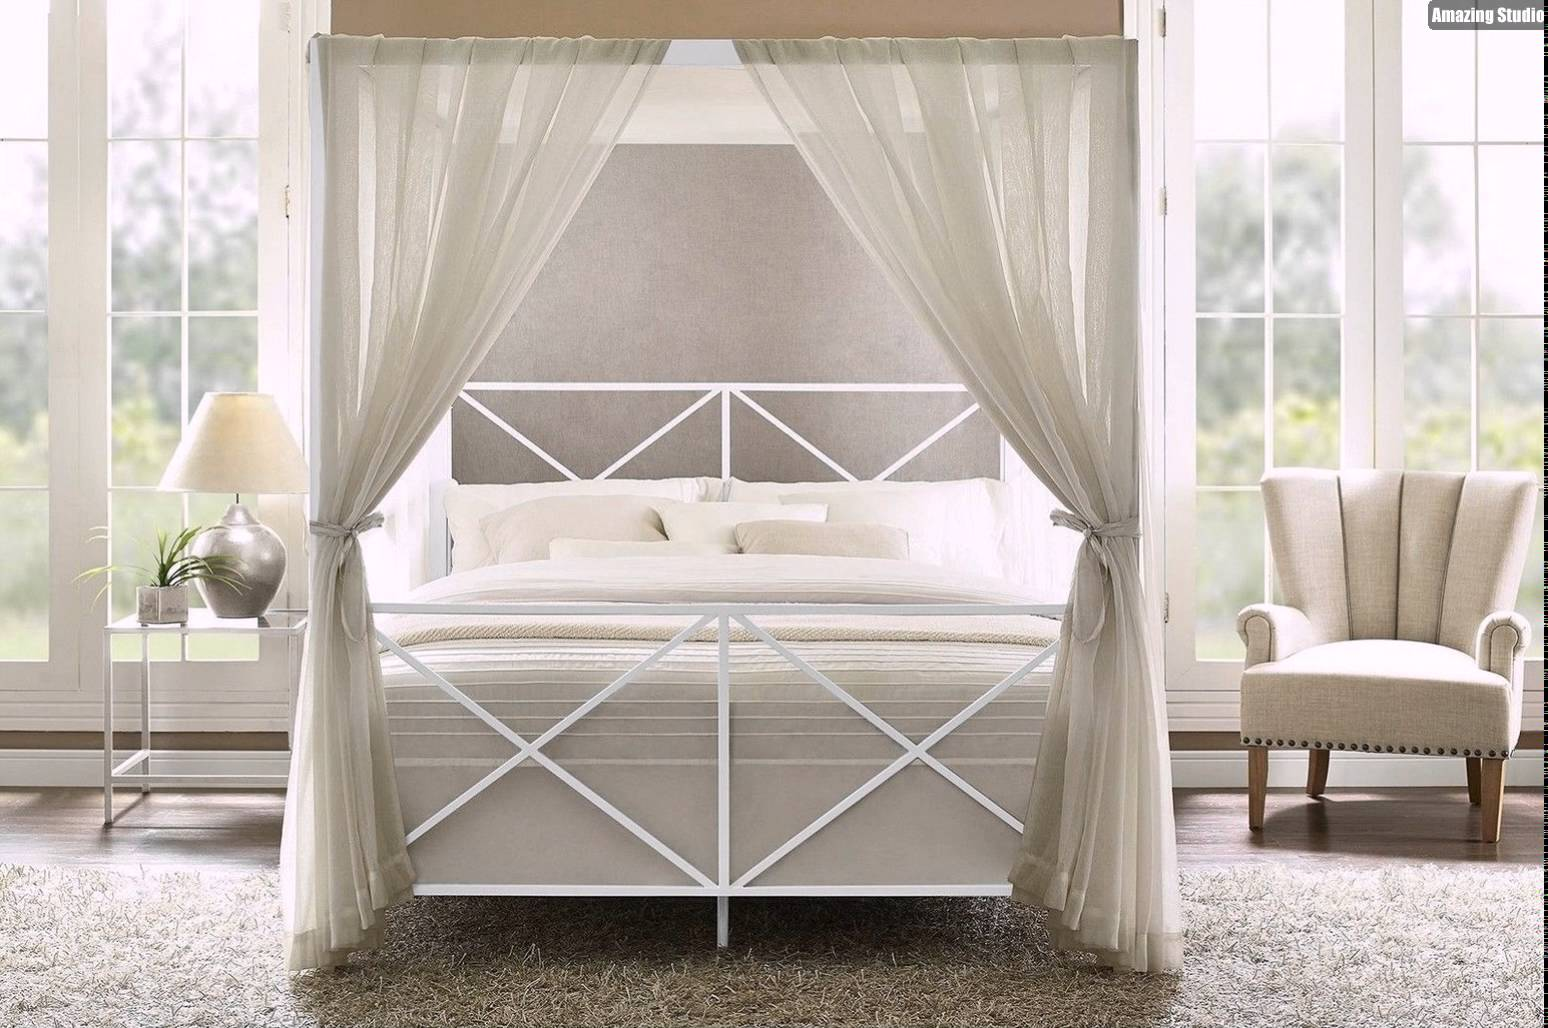 Elegant DIY Canopy Bed for Gorgeous Bedroom with Grey Sheer Curtain beside Cozy Wingchair & DIY Canopy Bed from PVC Pipes - MidCityEast